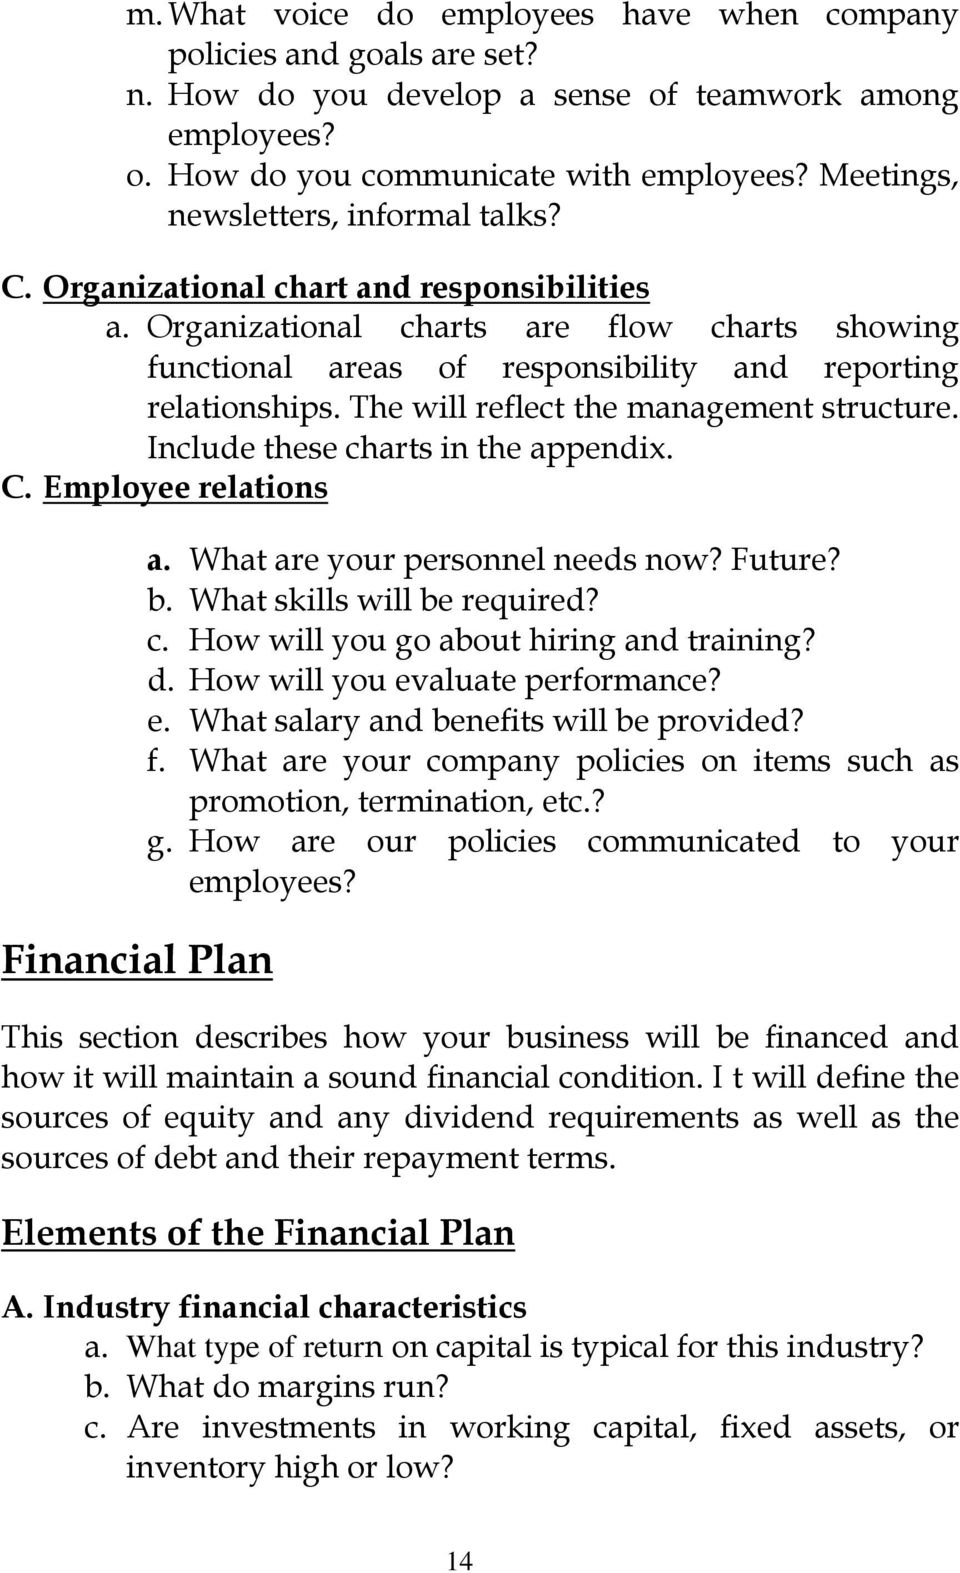 The will reflect the management structure. Include these charts in the appendix. C. Employee relations Financial Plan a. What are your personnel needs now? Future? b. What skills will be required? c. How will you go about hiring and training?